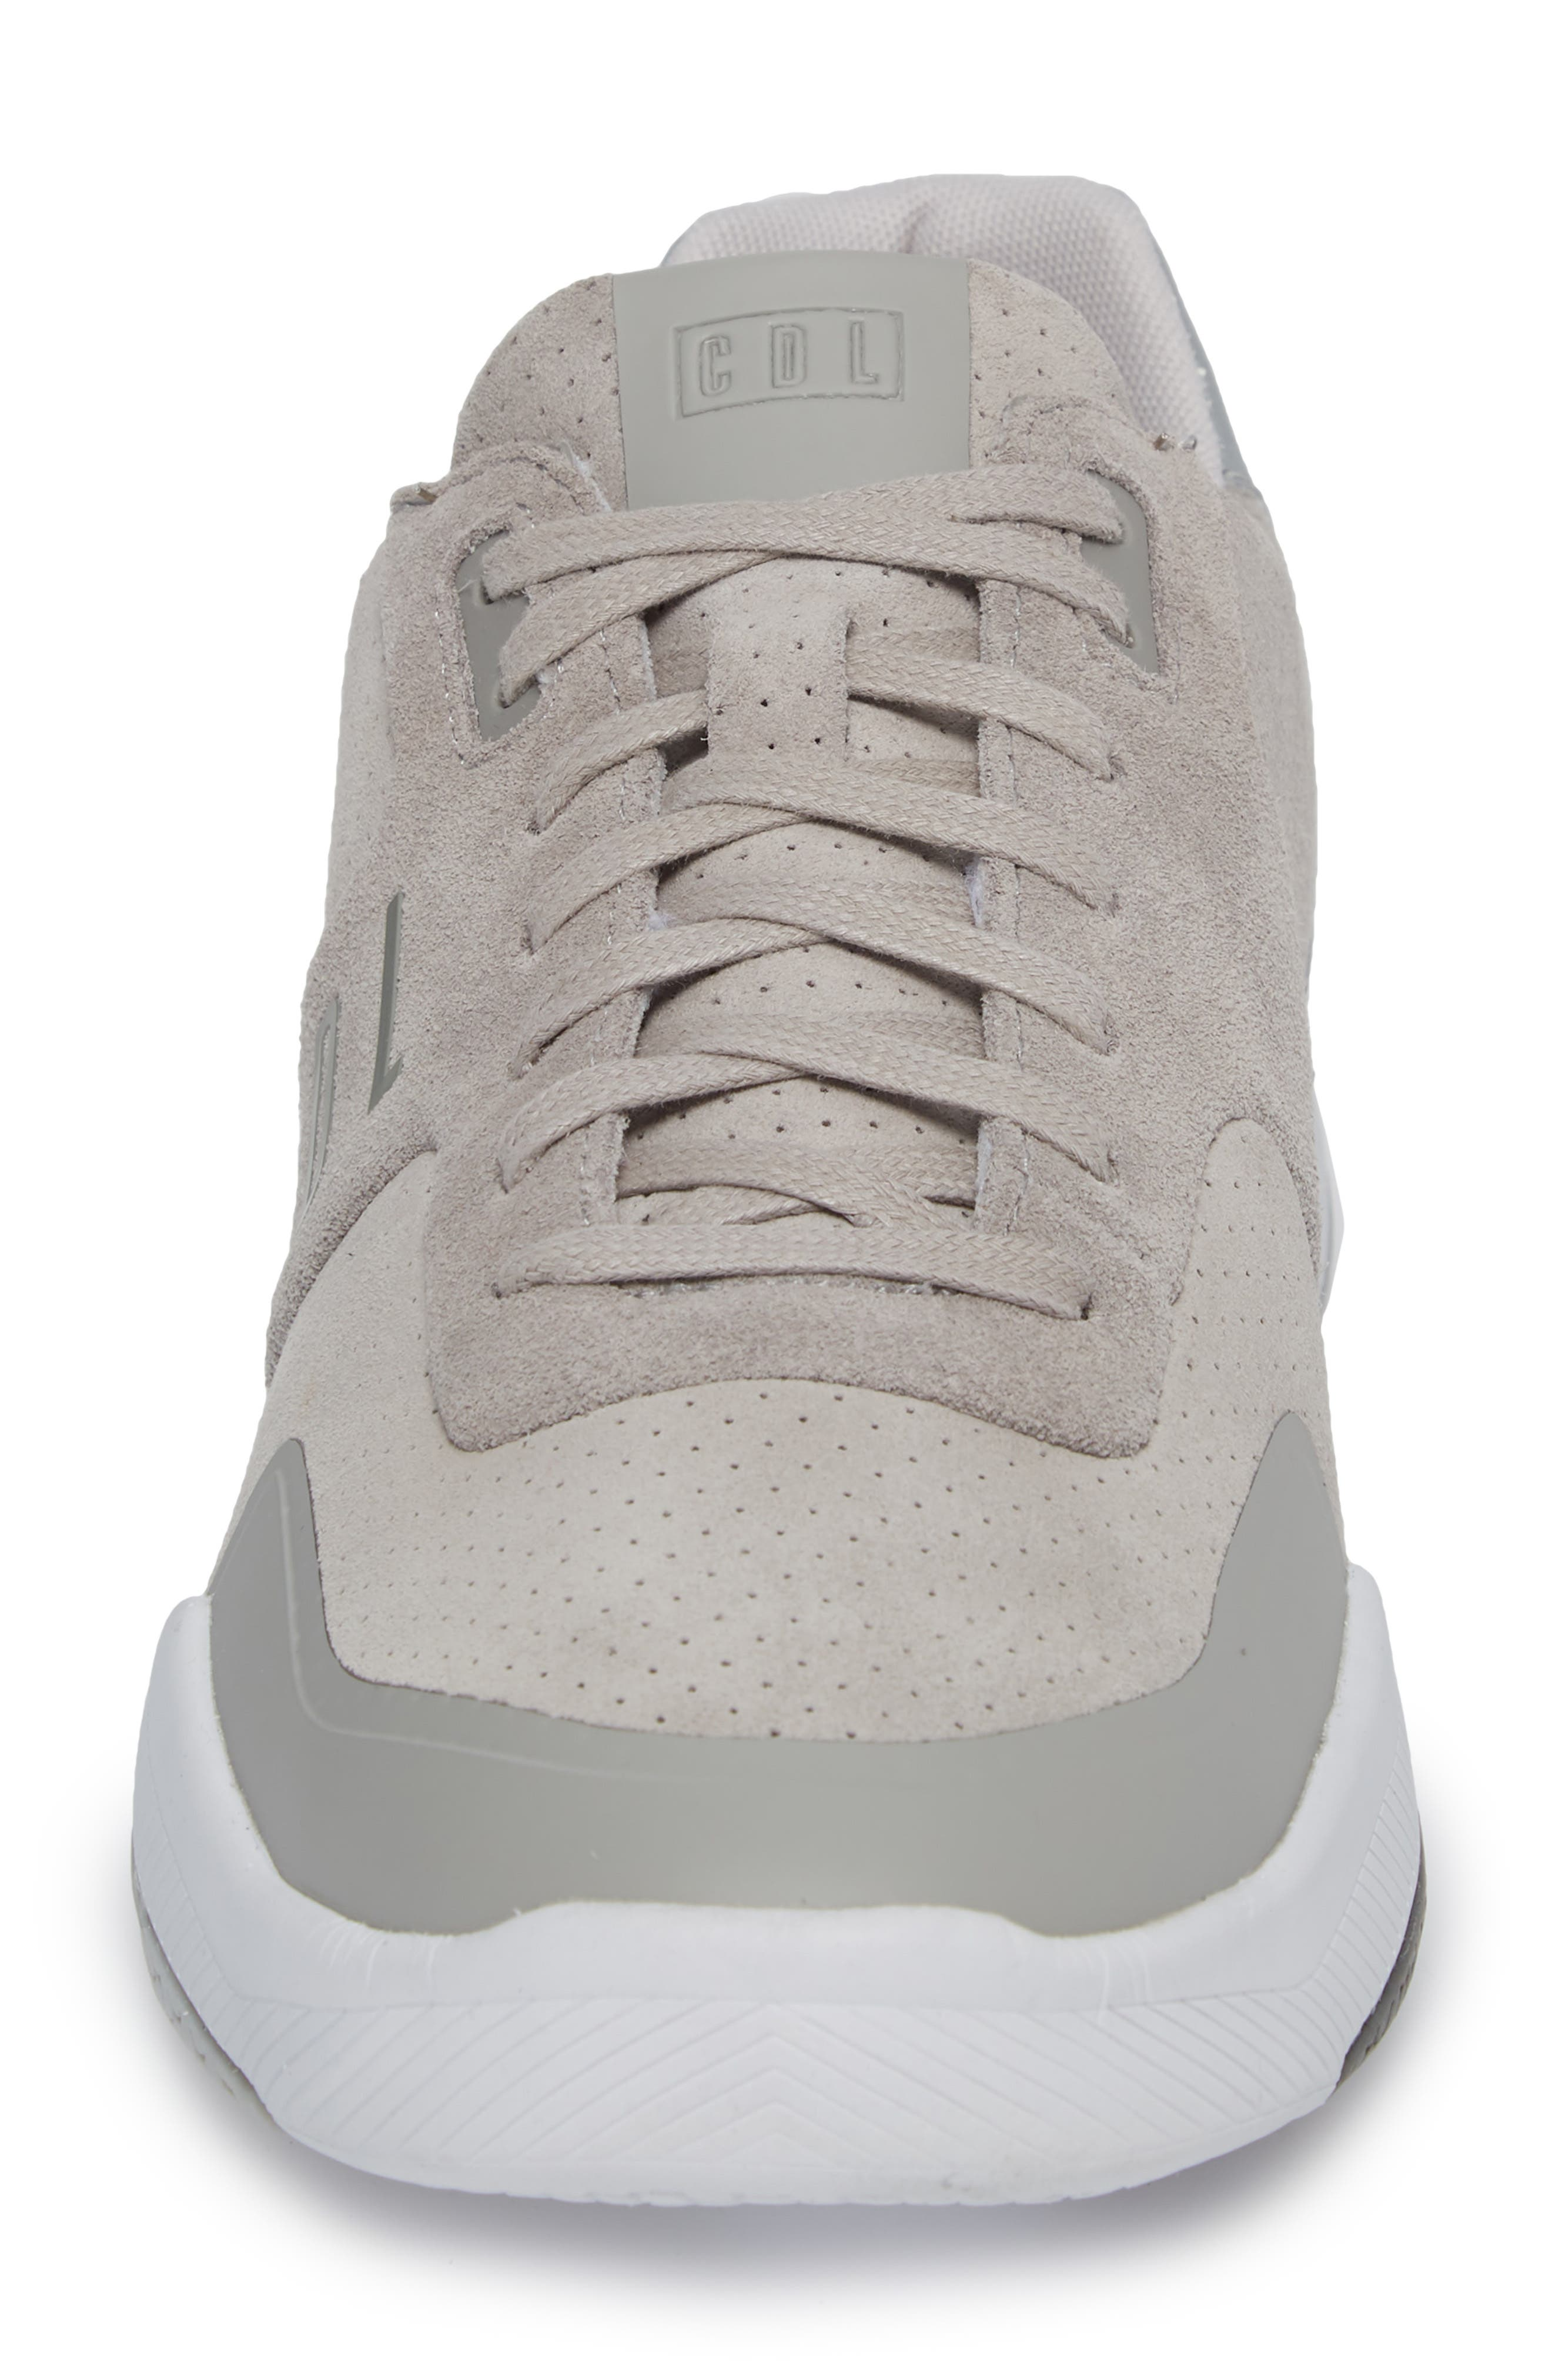 Shima Low Top Sneaker,                             Alternate thumbnail 4, color,                             Grey Suede